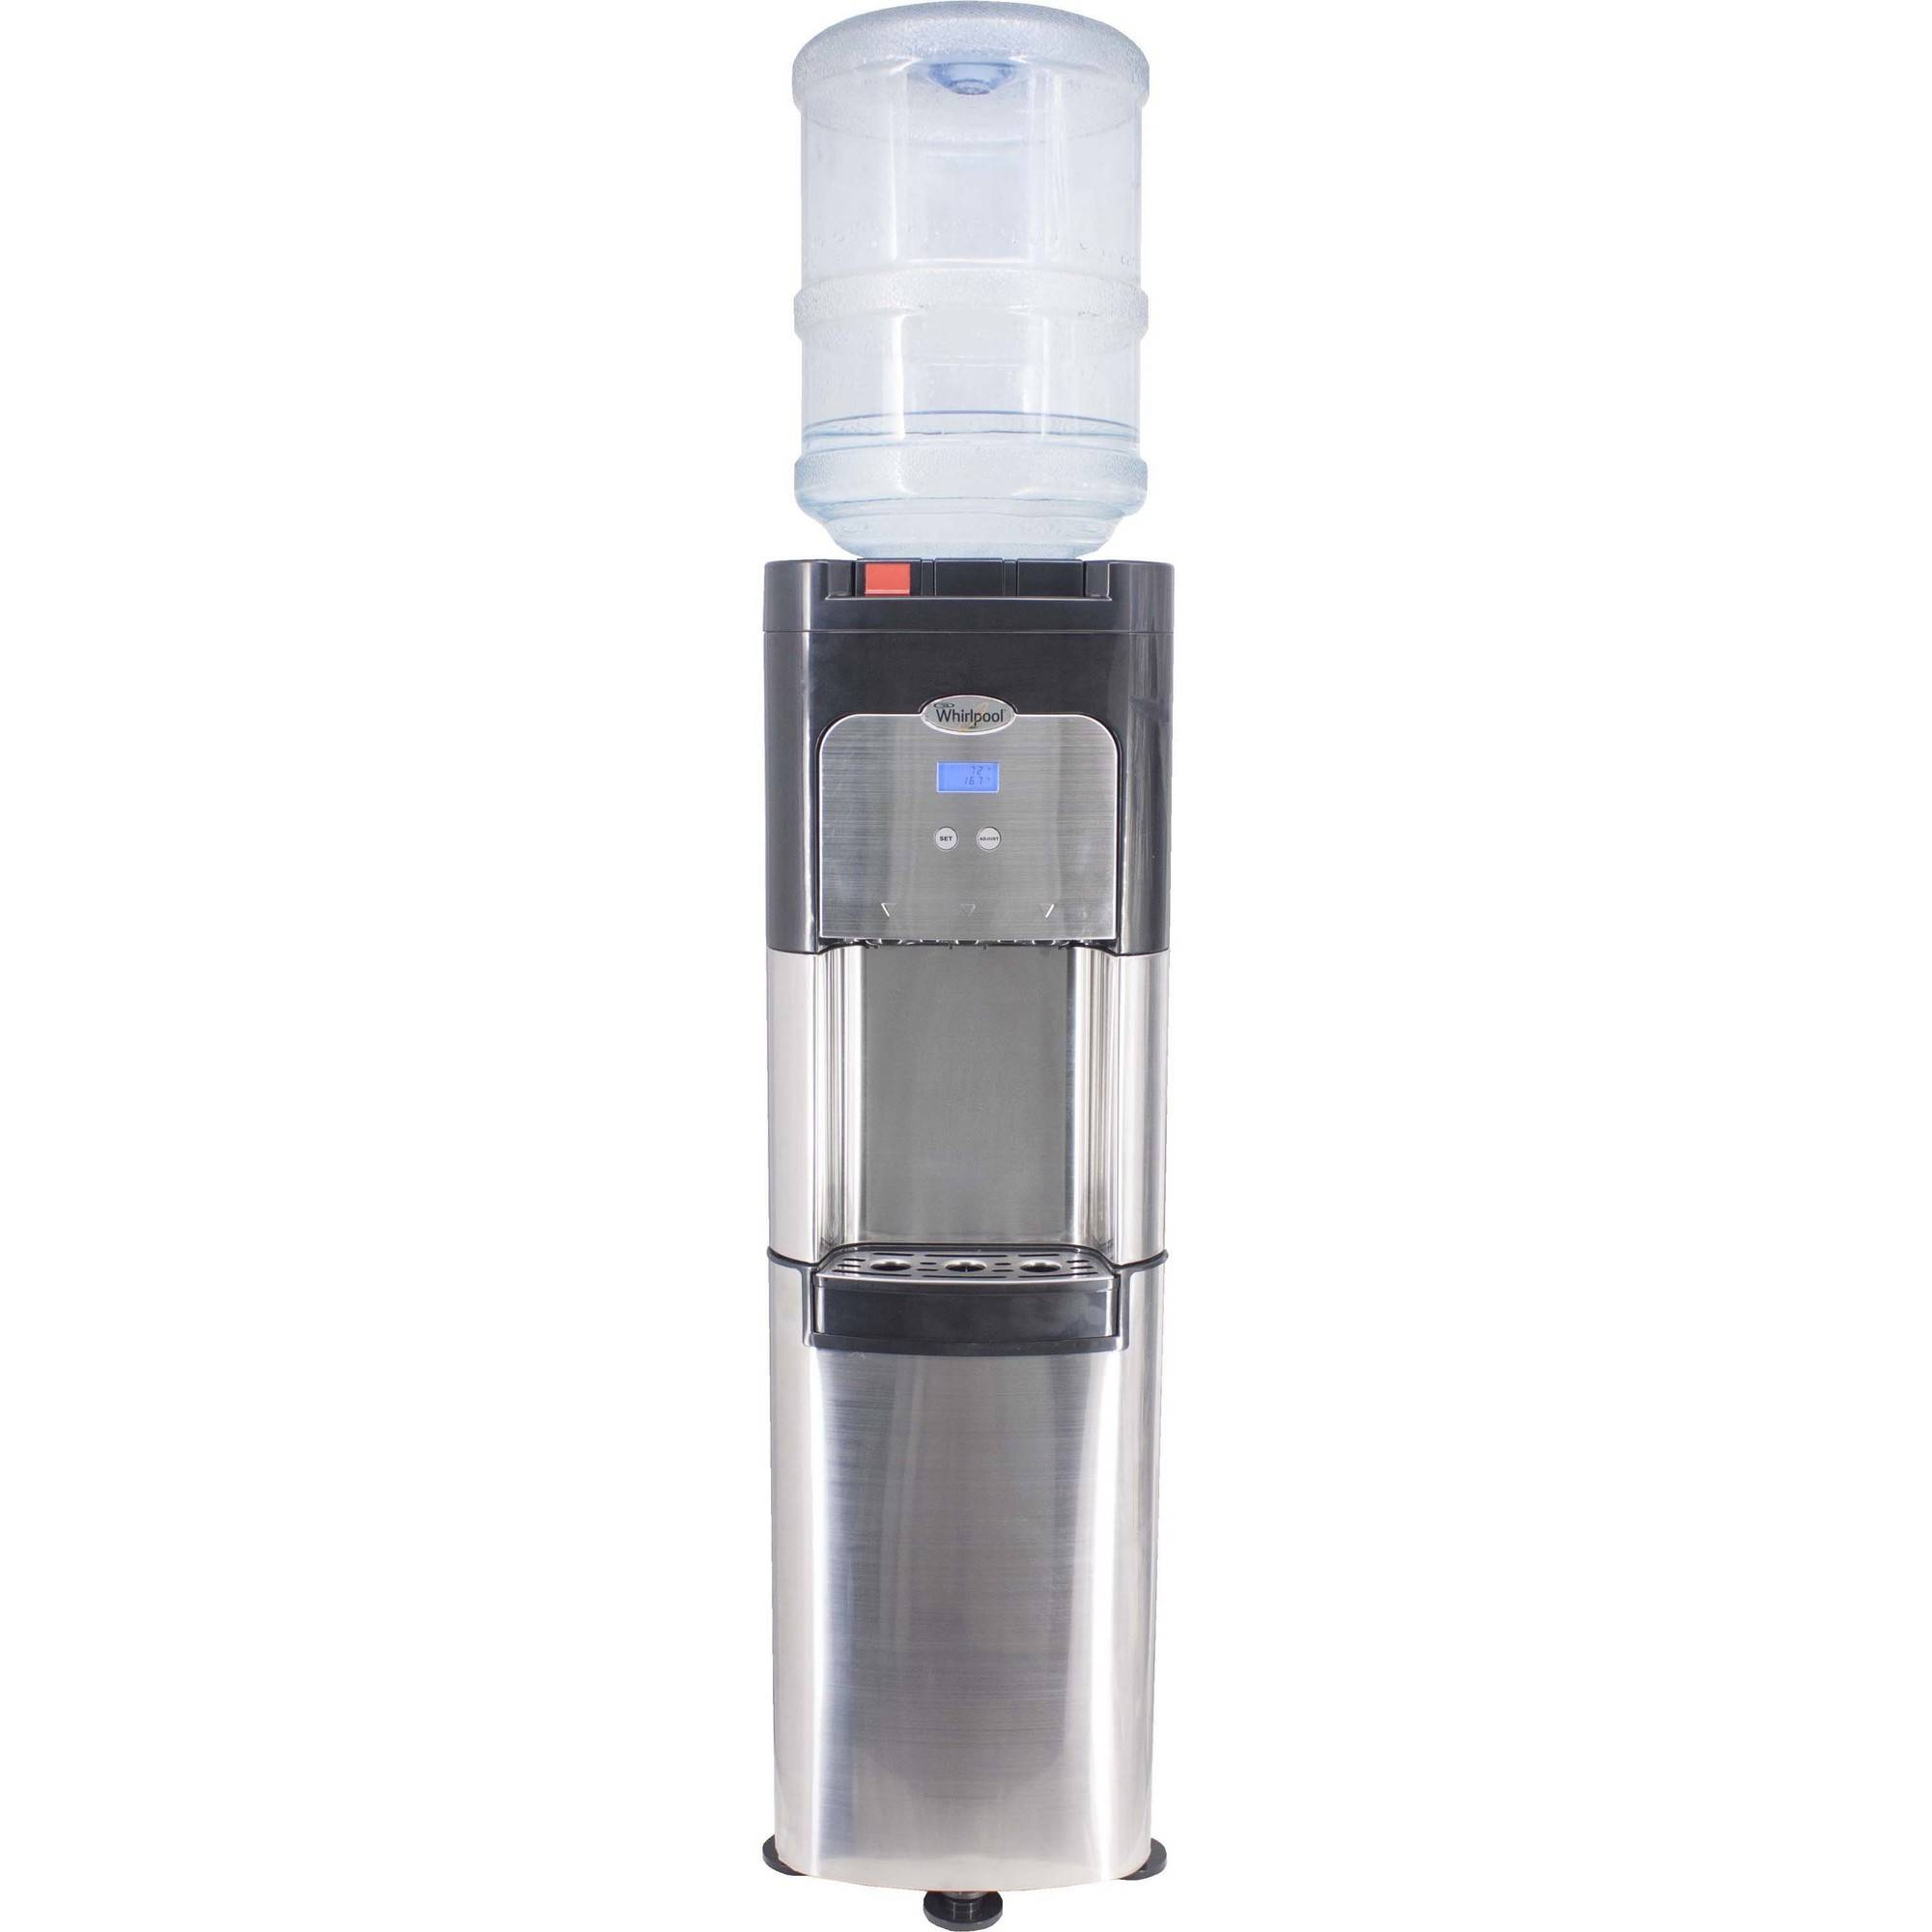 Whirlpool Stainless Steel Top Load Water Dispenser Water Cooler with Temperature Control and Cup Storage